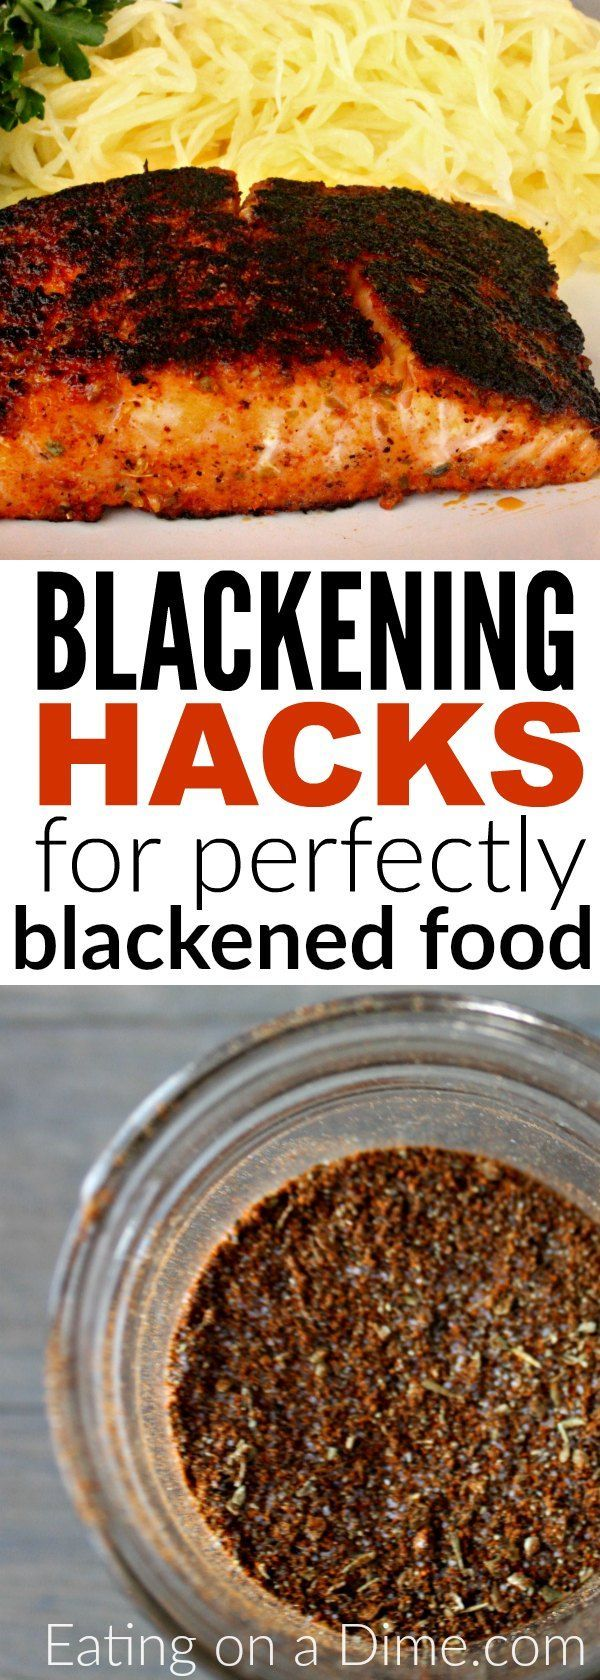 Forget buying blackened spices when you can make this easy Homemade Blackened Seasoning Recipe at home for a lot less. Enjoy Blackened salmon, blackened tilapia, and more with this easy blackened seasoning. Plus 5 easy tips for perfectly blackened food!